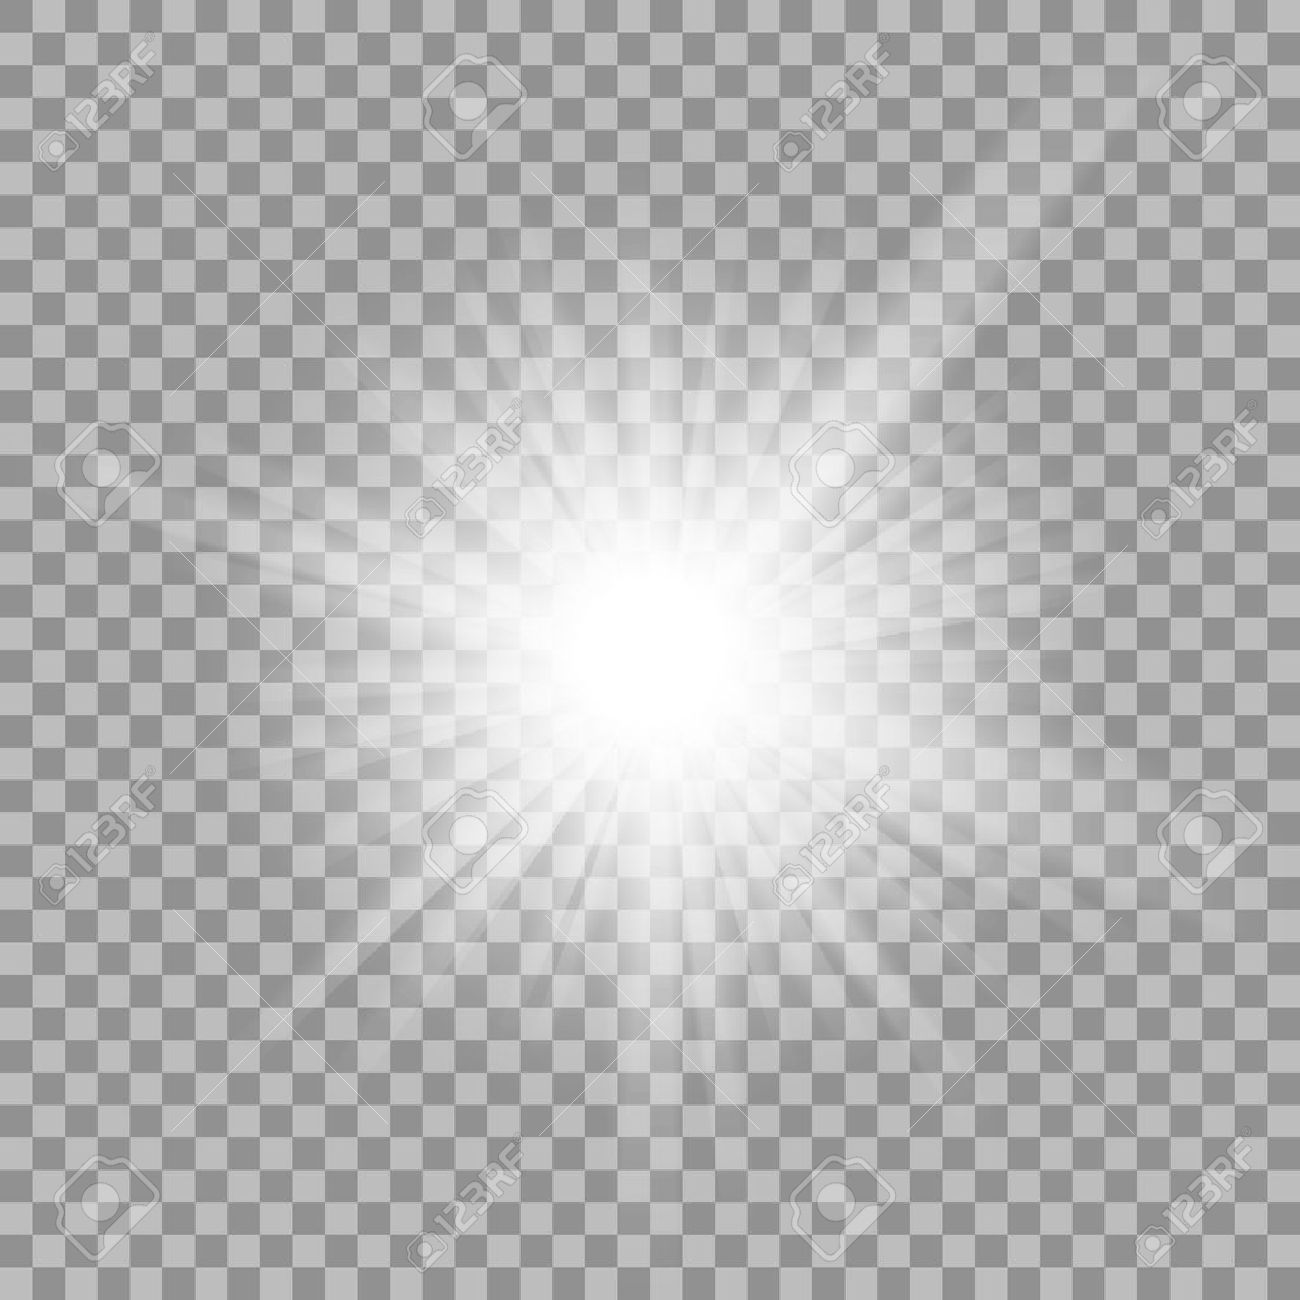 White glowing light burst explosion with transparent. - 53121484